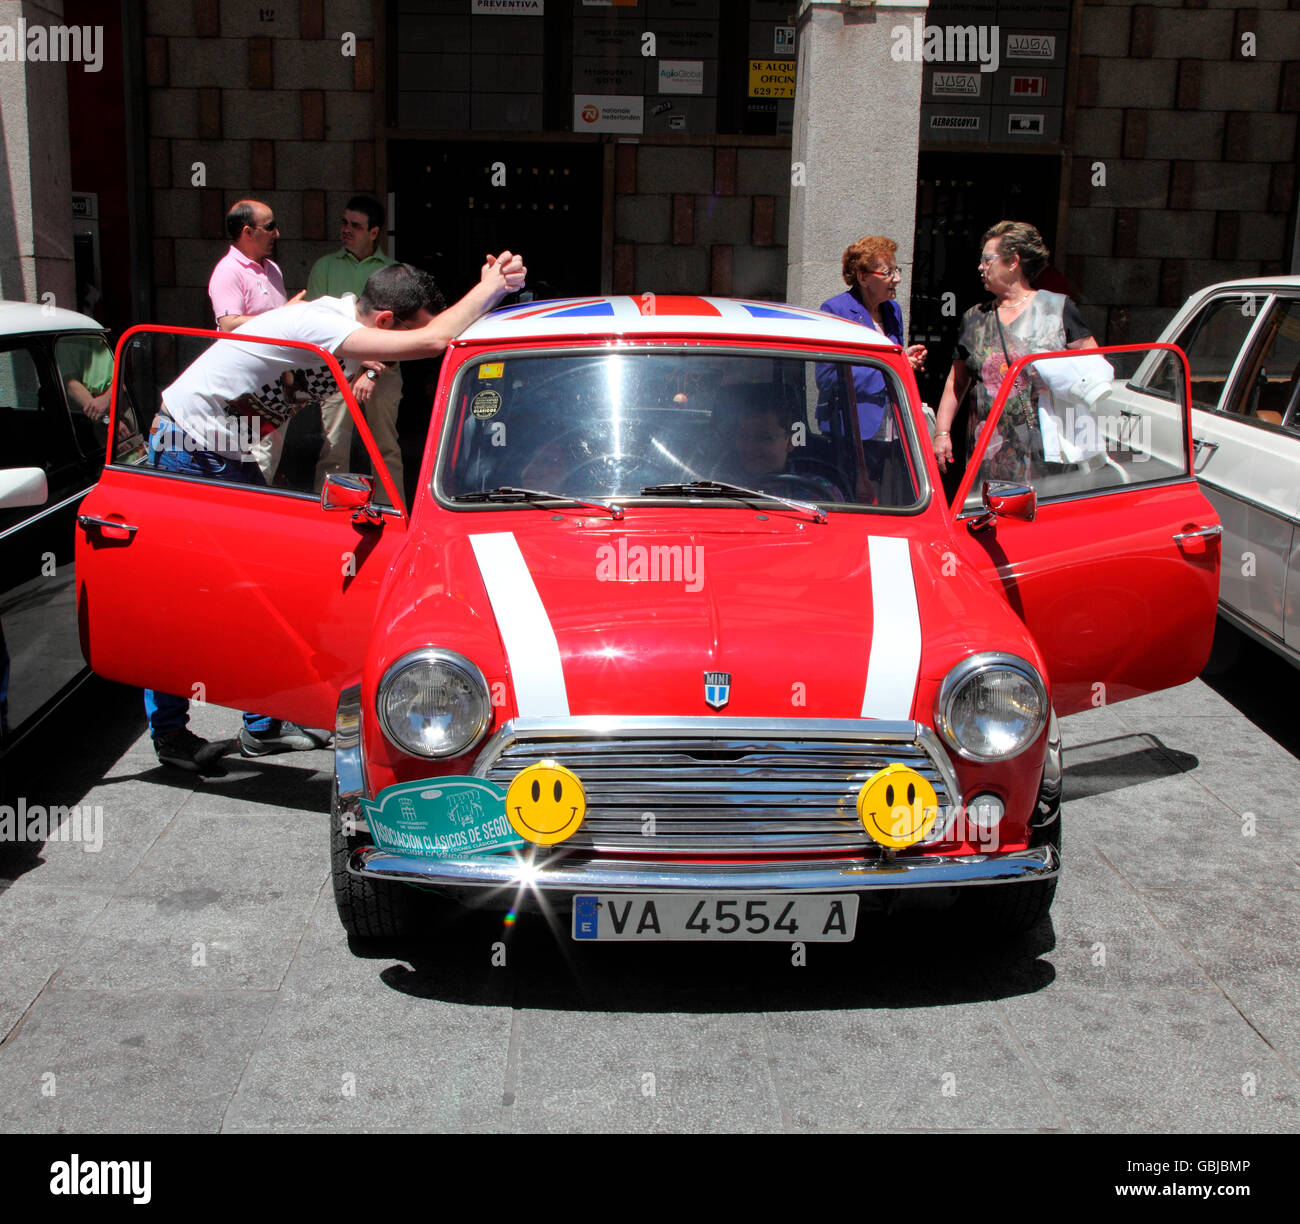 Classic British Mini on show in Segovia - Stock Image